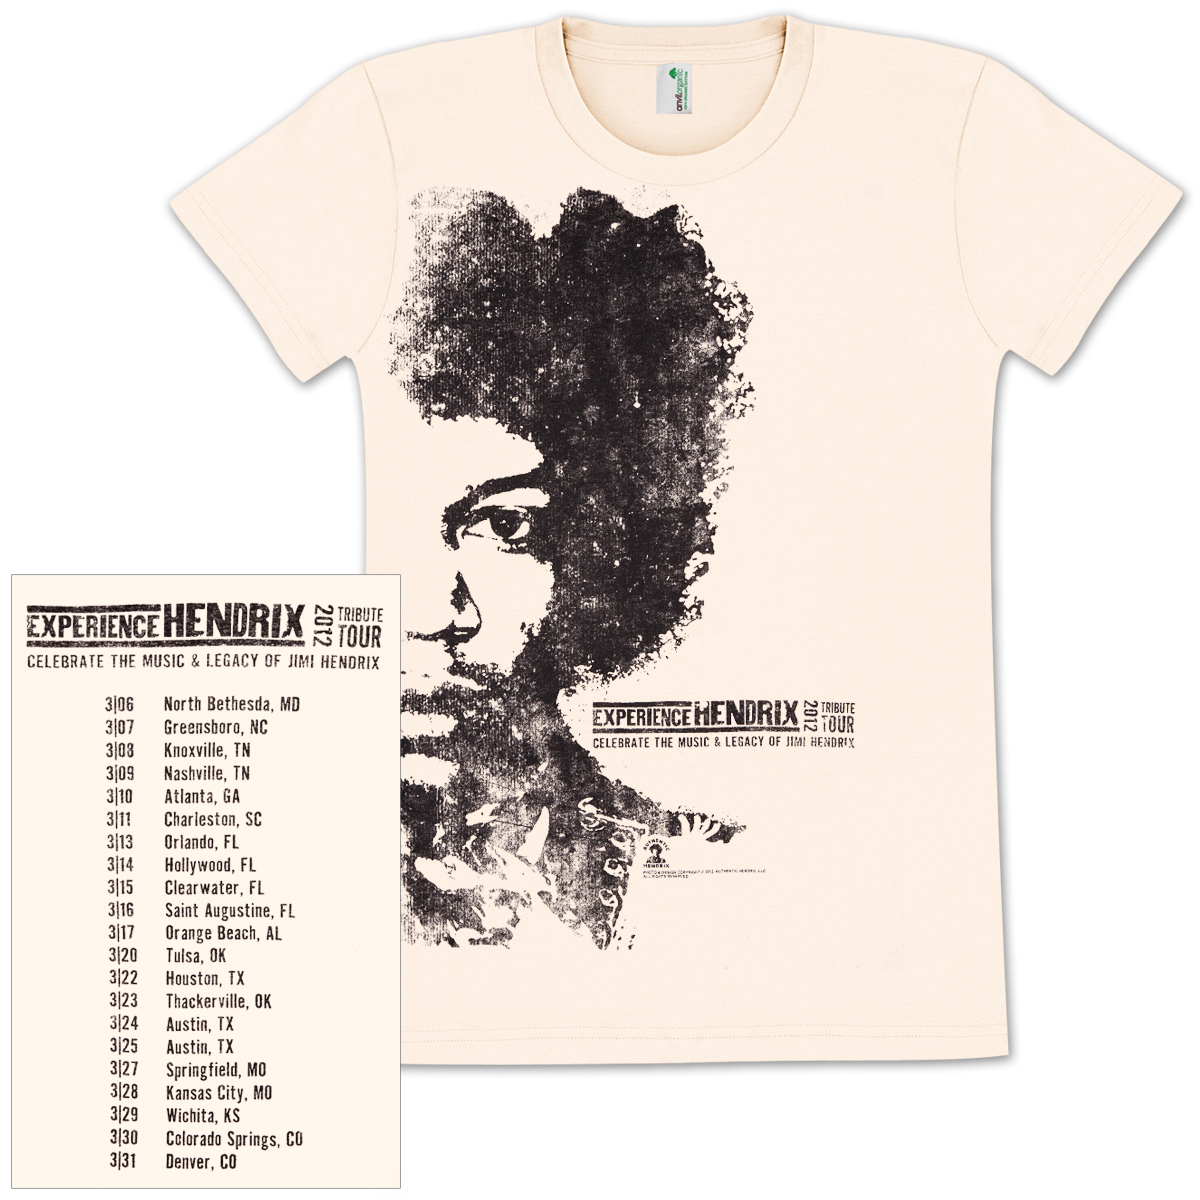 Experience Hendrix 2012 Tour Ladies T-shirt